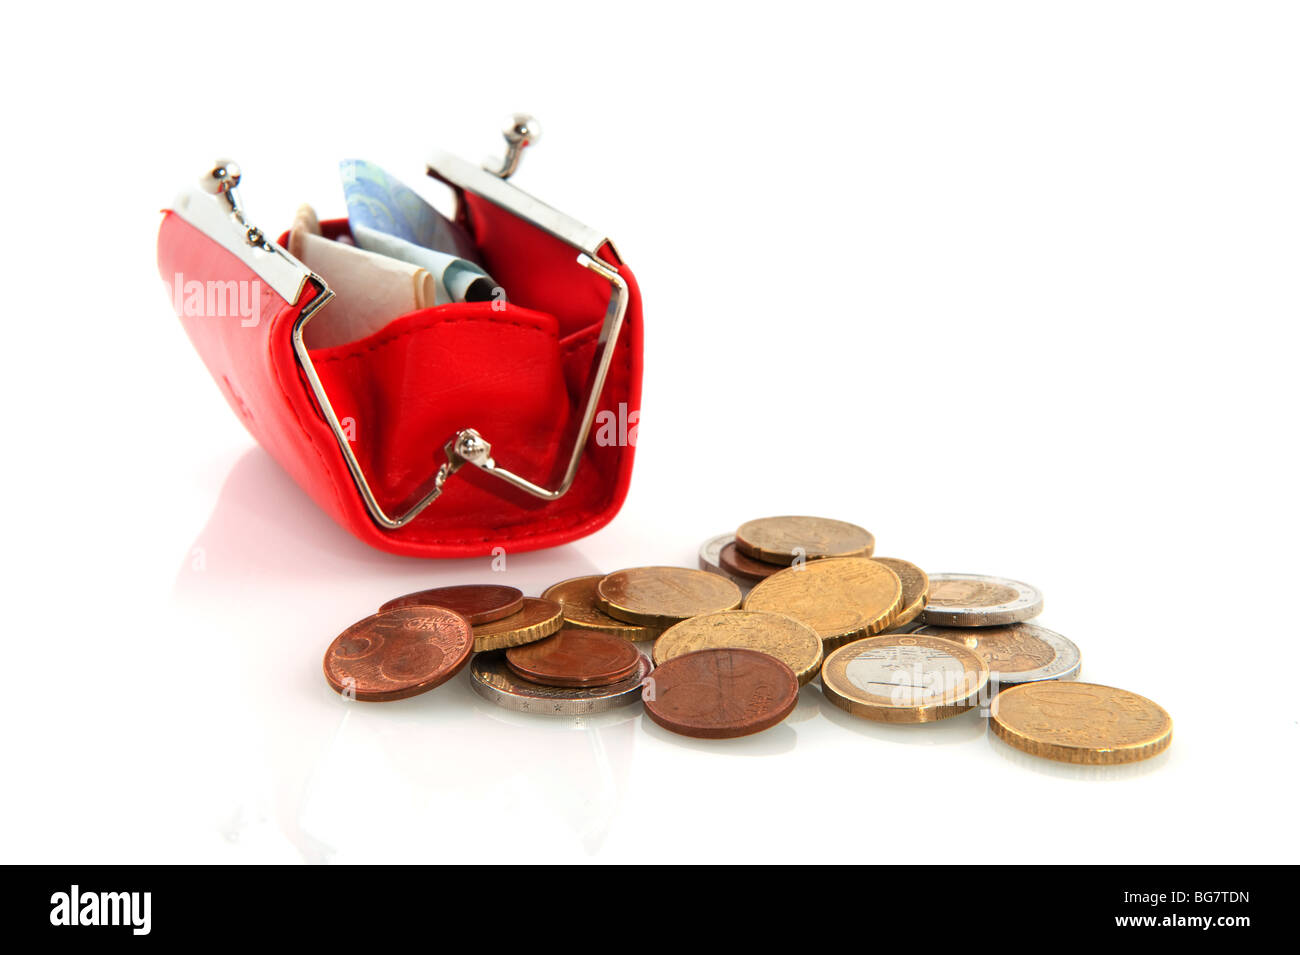 coins and banknotes in a red purse - Stock Image